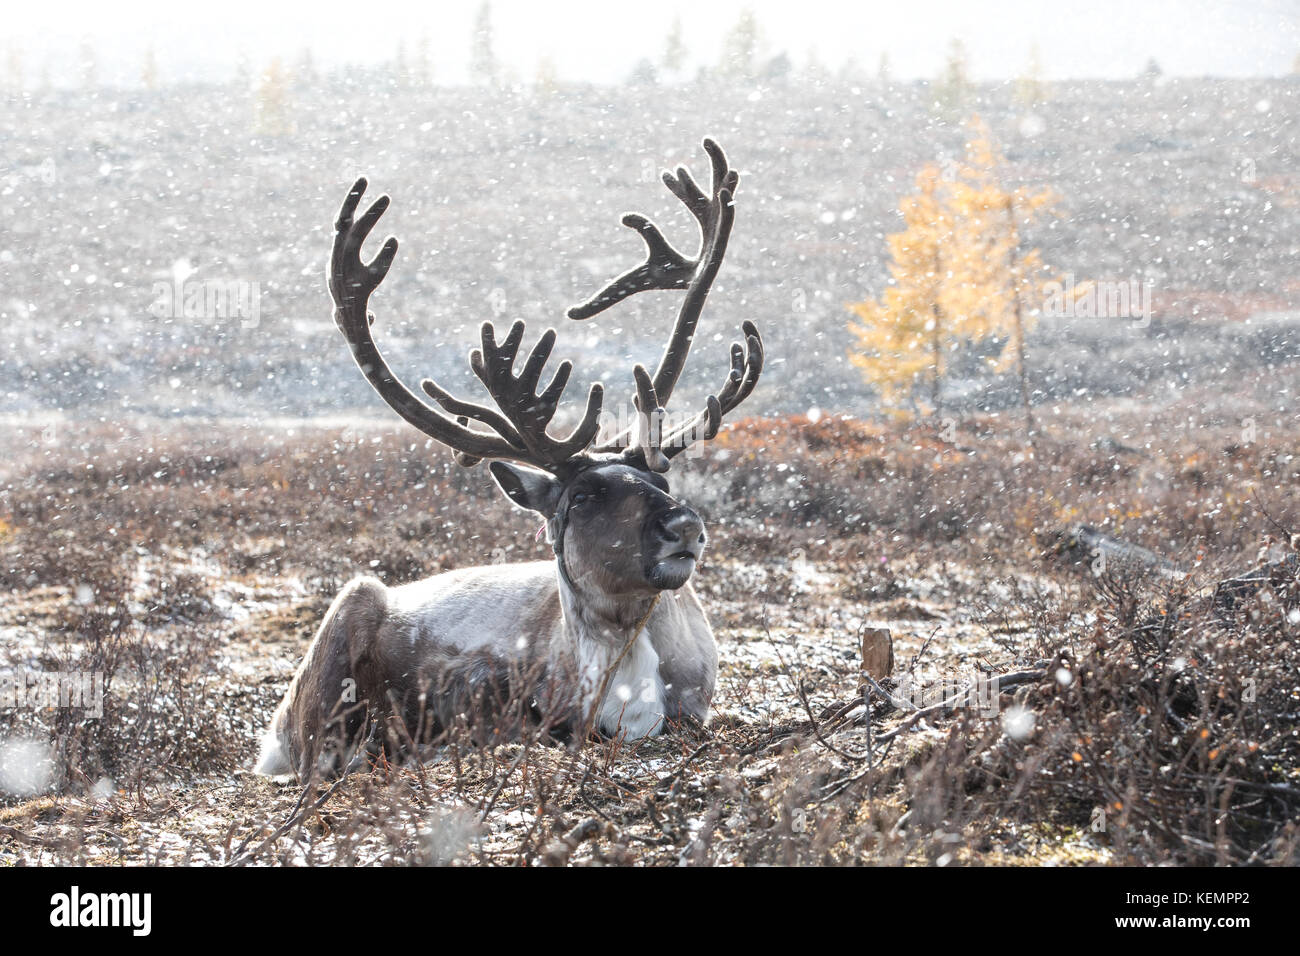 Male reindeer with magnificent antlers lying on the ground during a snow storm. Khuvsgol, Mongolia. - Stock Image